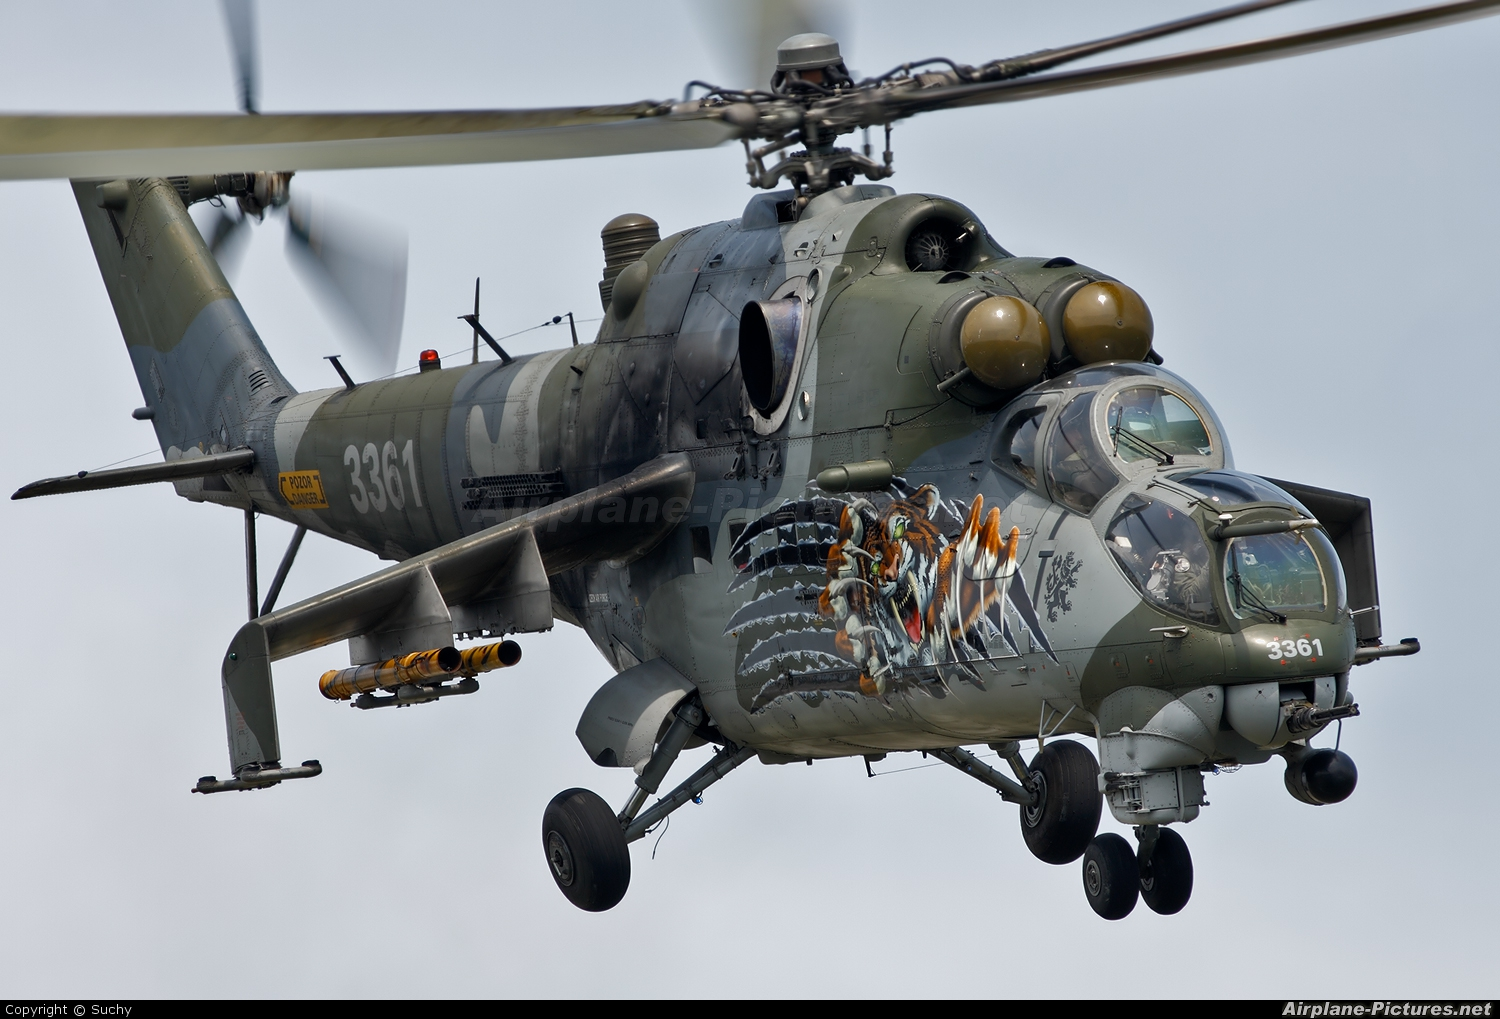 hind helicopters with 3361 Czech Air Force Mil Mi 35 on Russian Helicopters Development Import Substitution furthermore Transport And Attack Helicopter Mi 24 Hind 279092127 besides Imgp0618 Gilze10 Mil Mi 35 Czech Air Force additionally Lhelicoptere Mi 24 Cree La Panique Chez Les Rebelles En Syrie together with Watch.